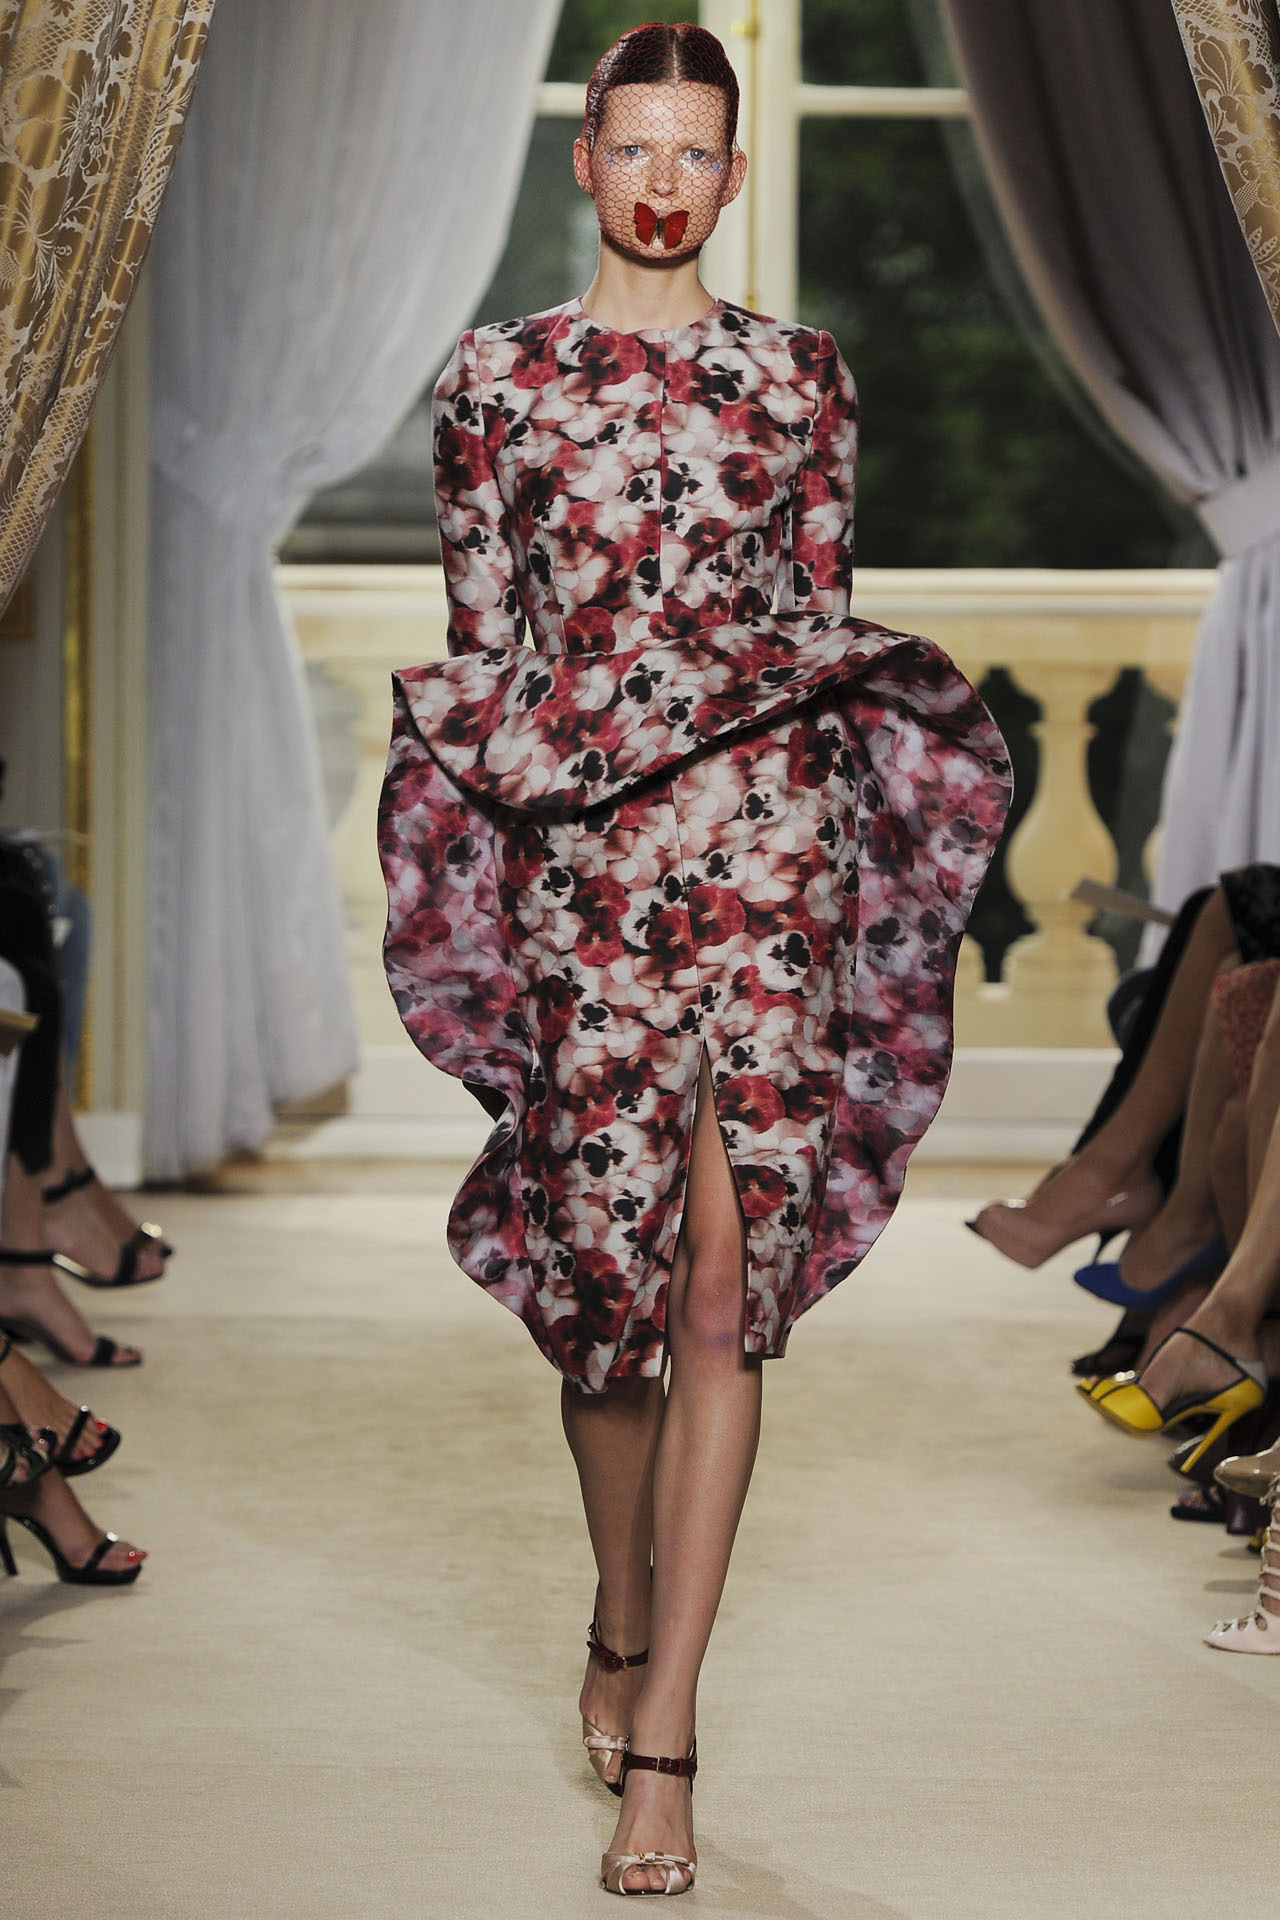 Giambattista Valli Fall 2012 Couture Go to Vogue.com for the full collection and review.